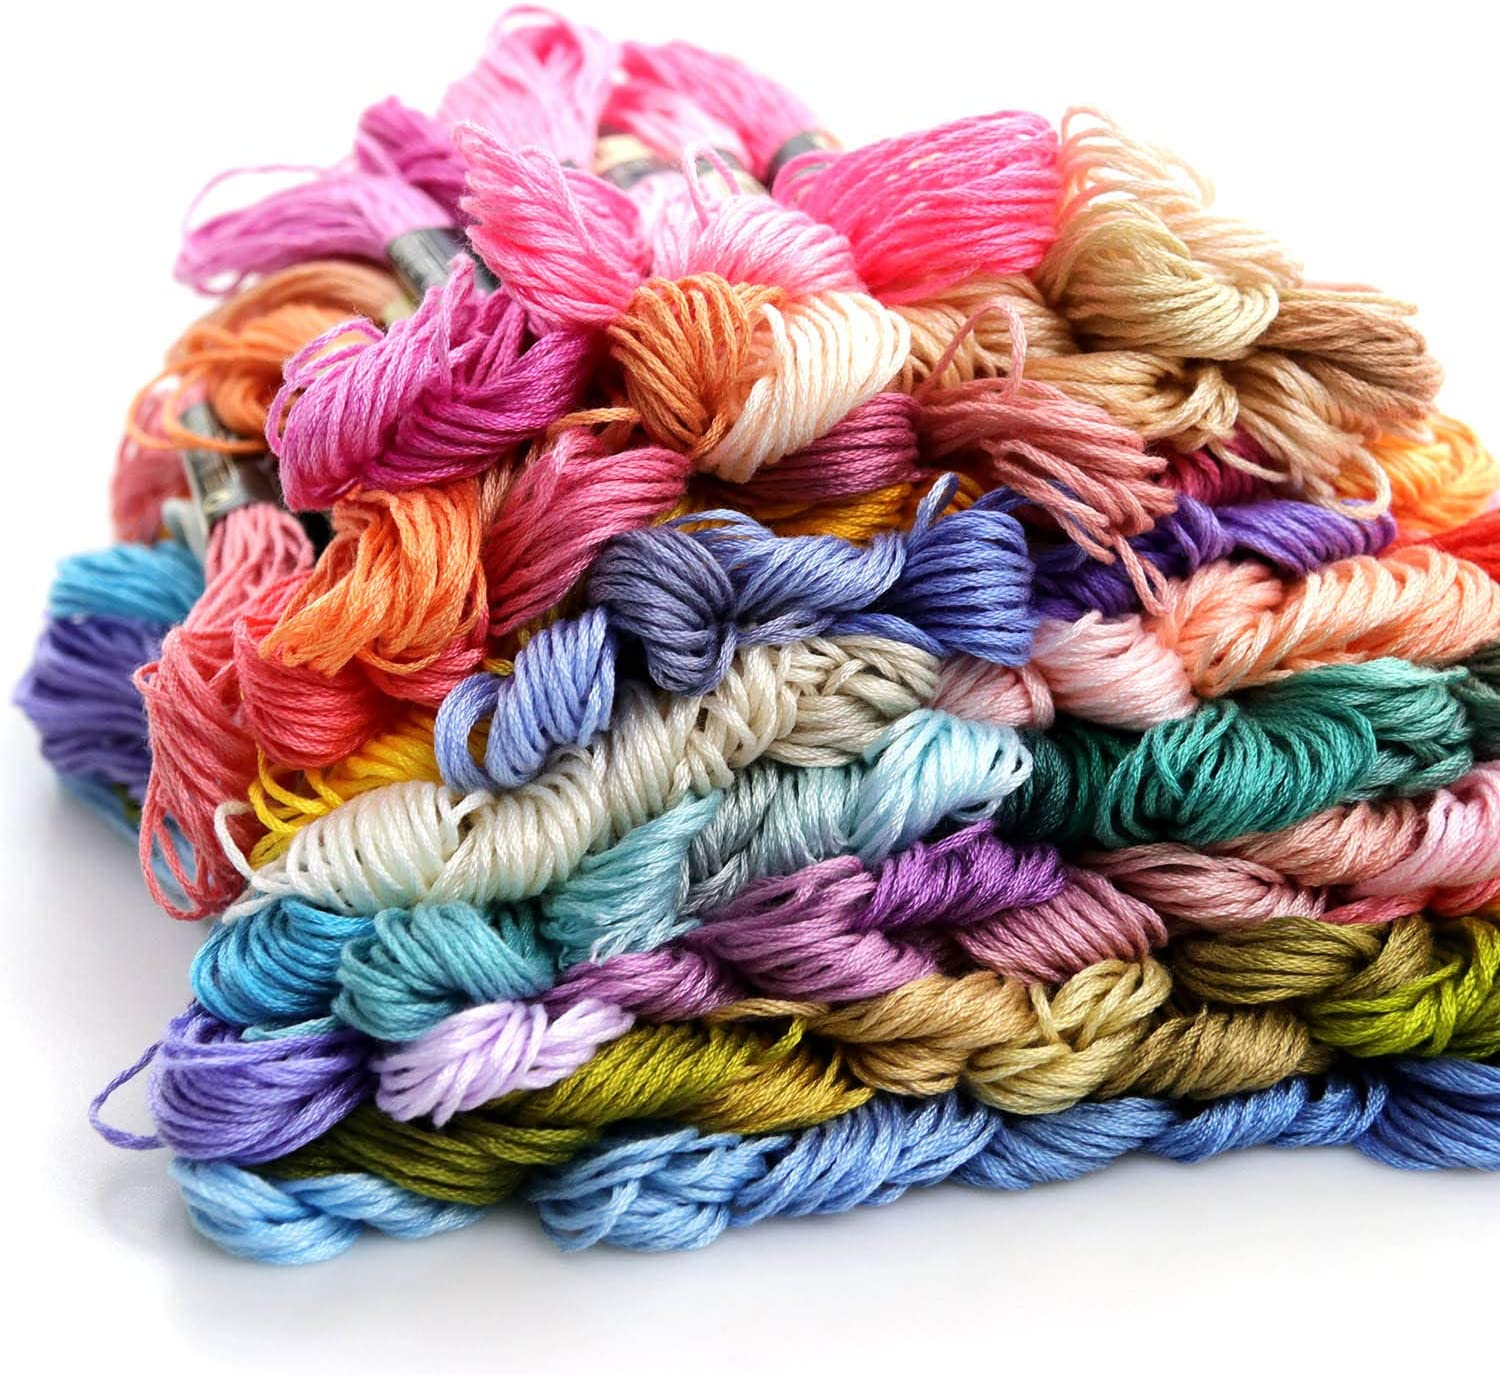 LOVIMAG Premium Rainbow Color Embroidery Floss with Cotton for Cross Stitch Threads Bracelet Yarn Embroidery Floss Set Craft Floss